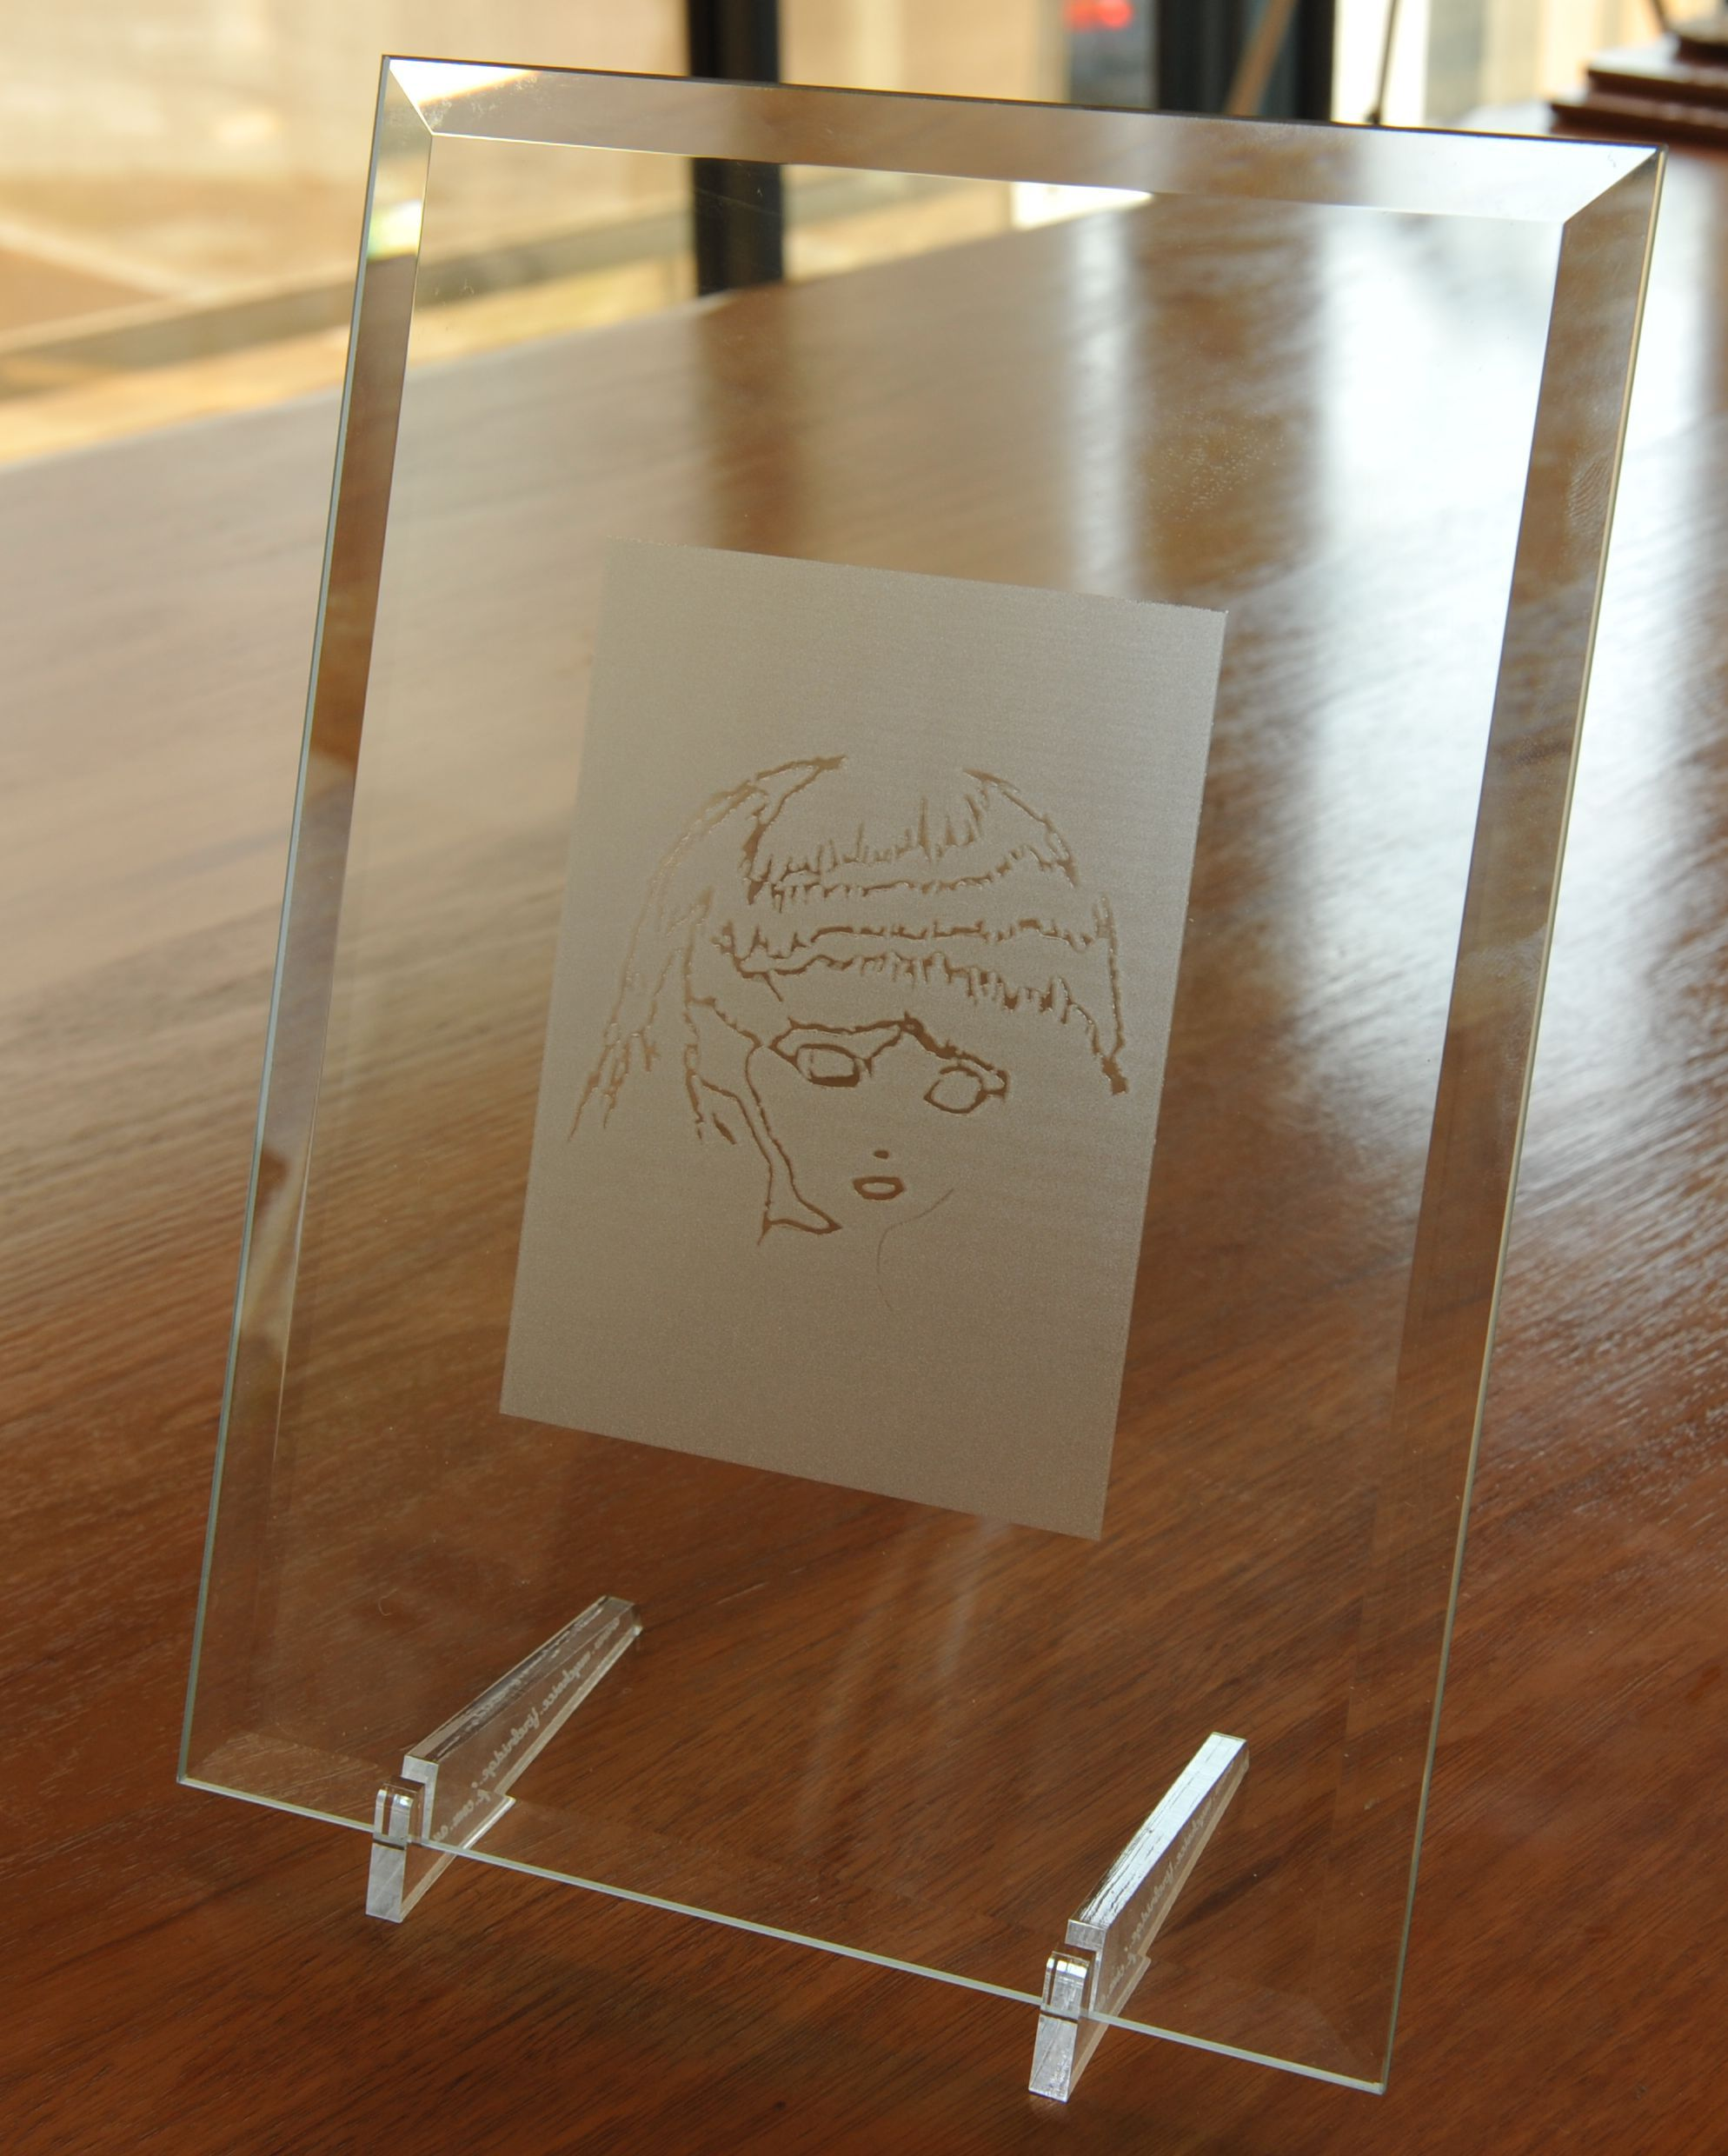 Bevel glass laser engraved art 275 x 200 mm clear acrylic stand. http://www.mychoice.firebridge.com.au/xcart/Glass-Photo-Frame-with-Photo-etched-into-glass-200-x-275-mm-8-x-11-p-17273.html